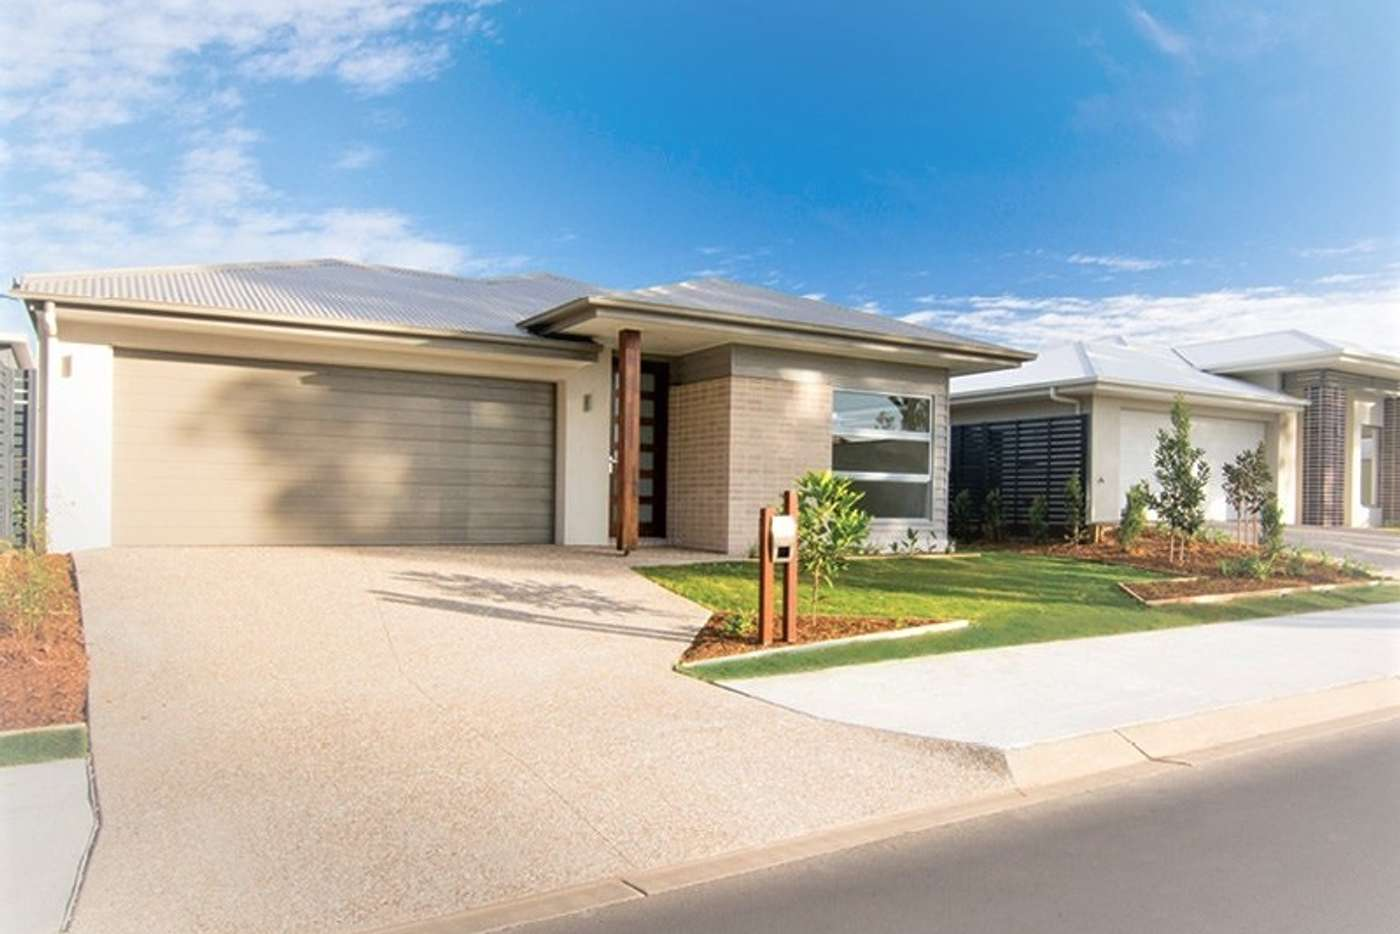 Main view of Homely house listing, 39 Unwin Rd North, Redland Bay QLD 4165